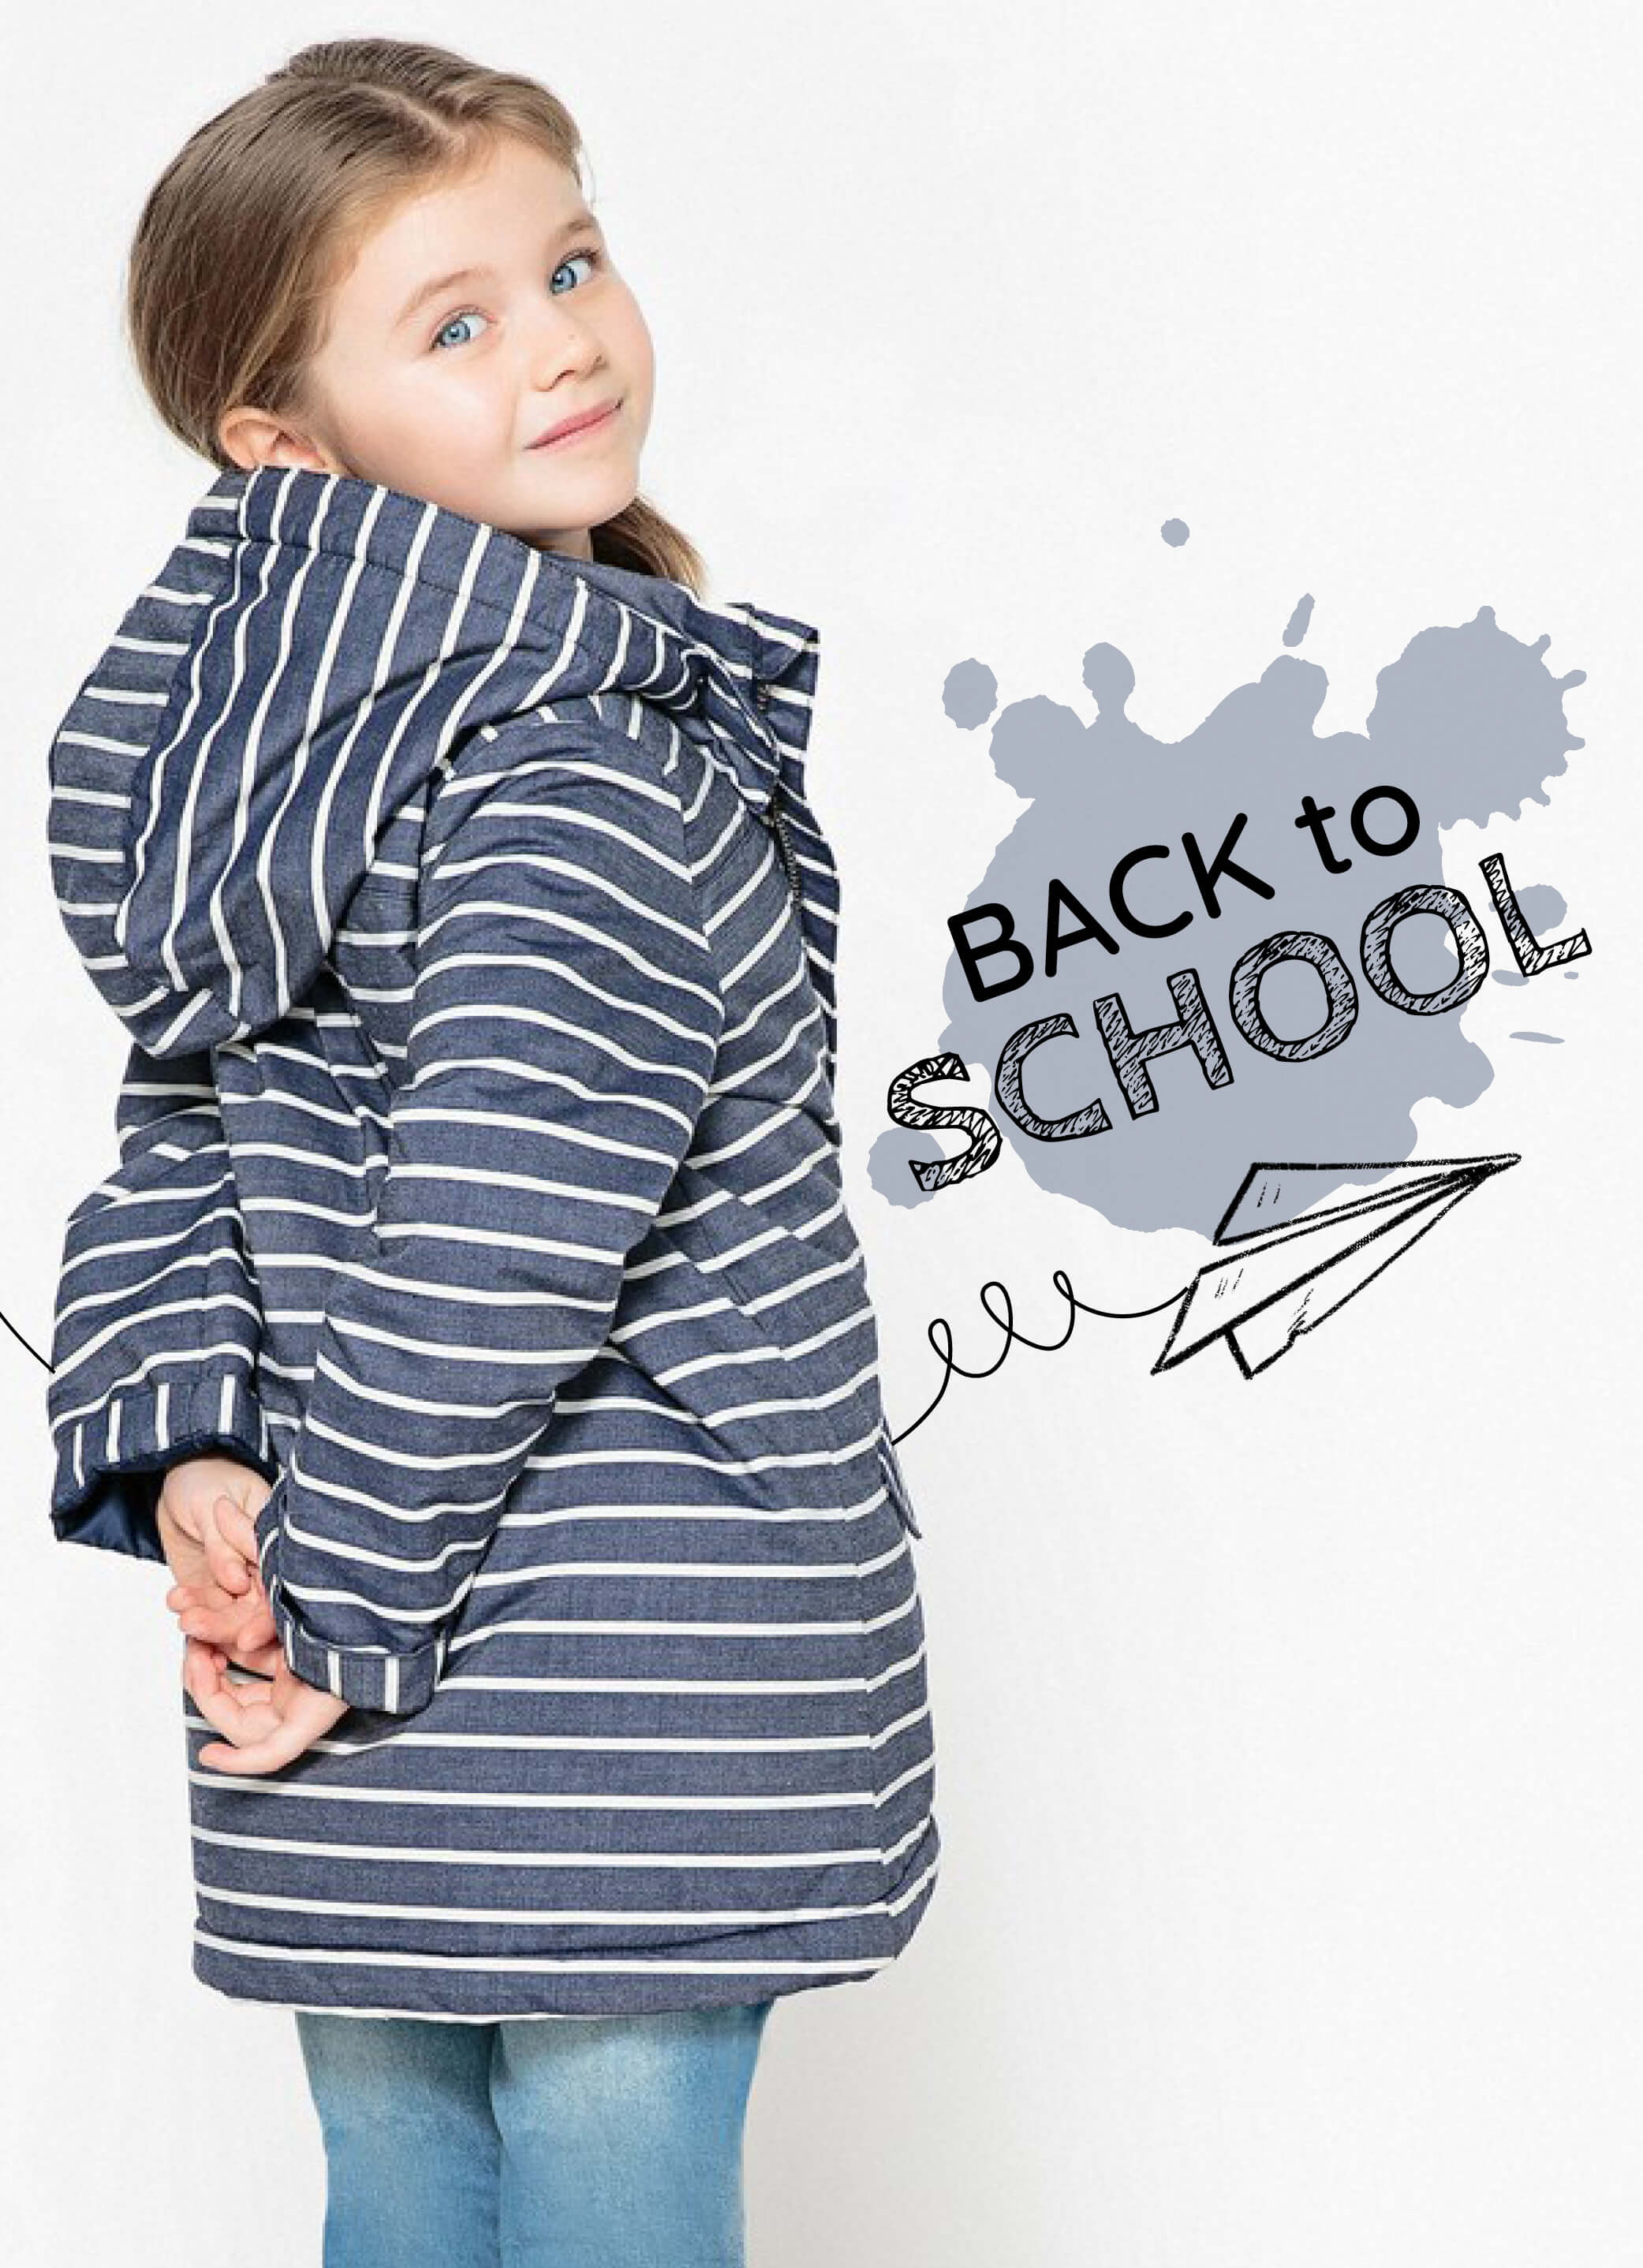 25% Off Back to School